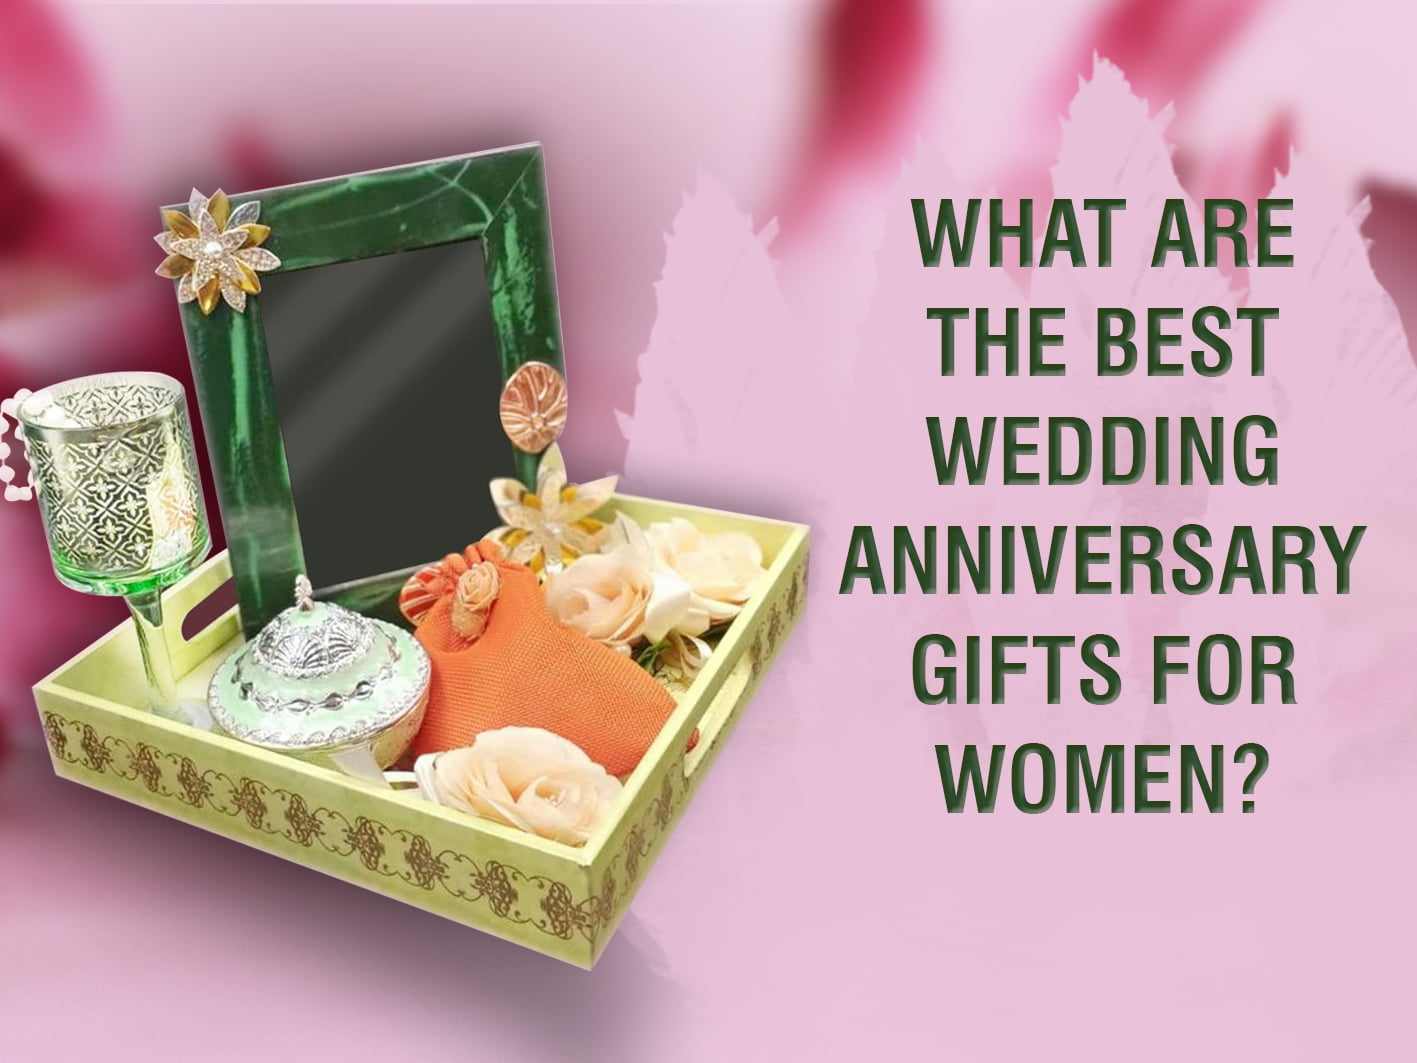 What Are The Best Wedding Anniversary Gifts For Women?